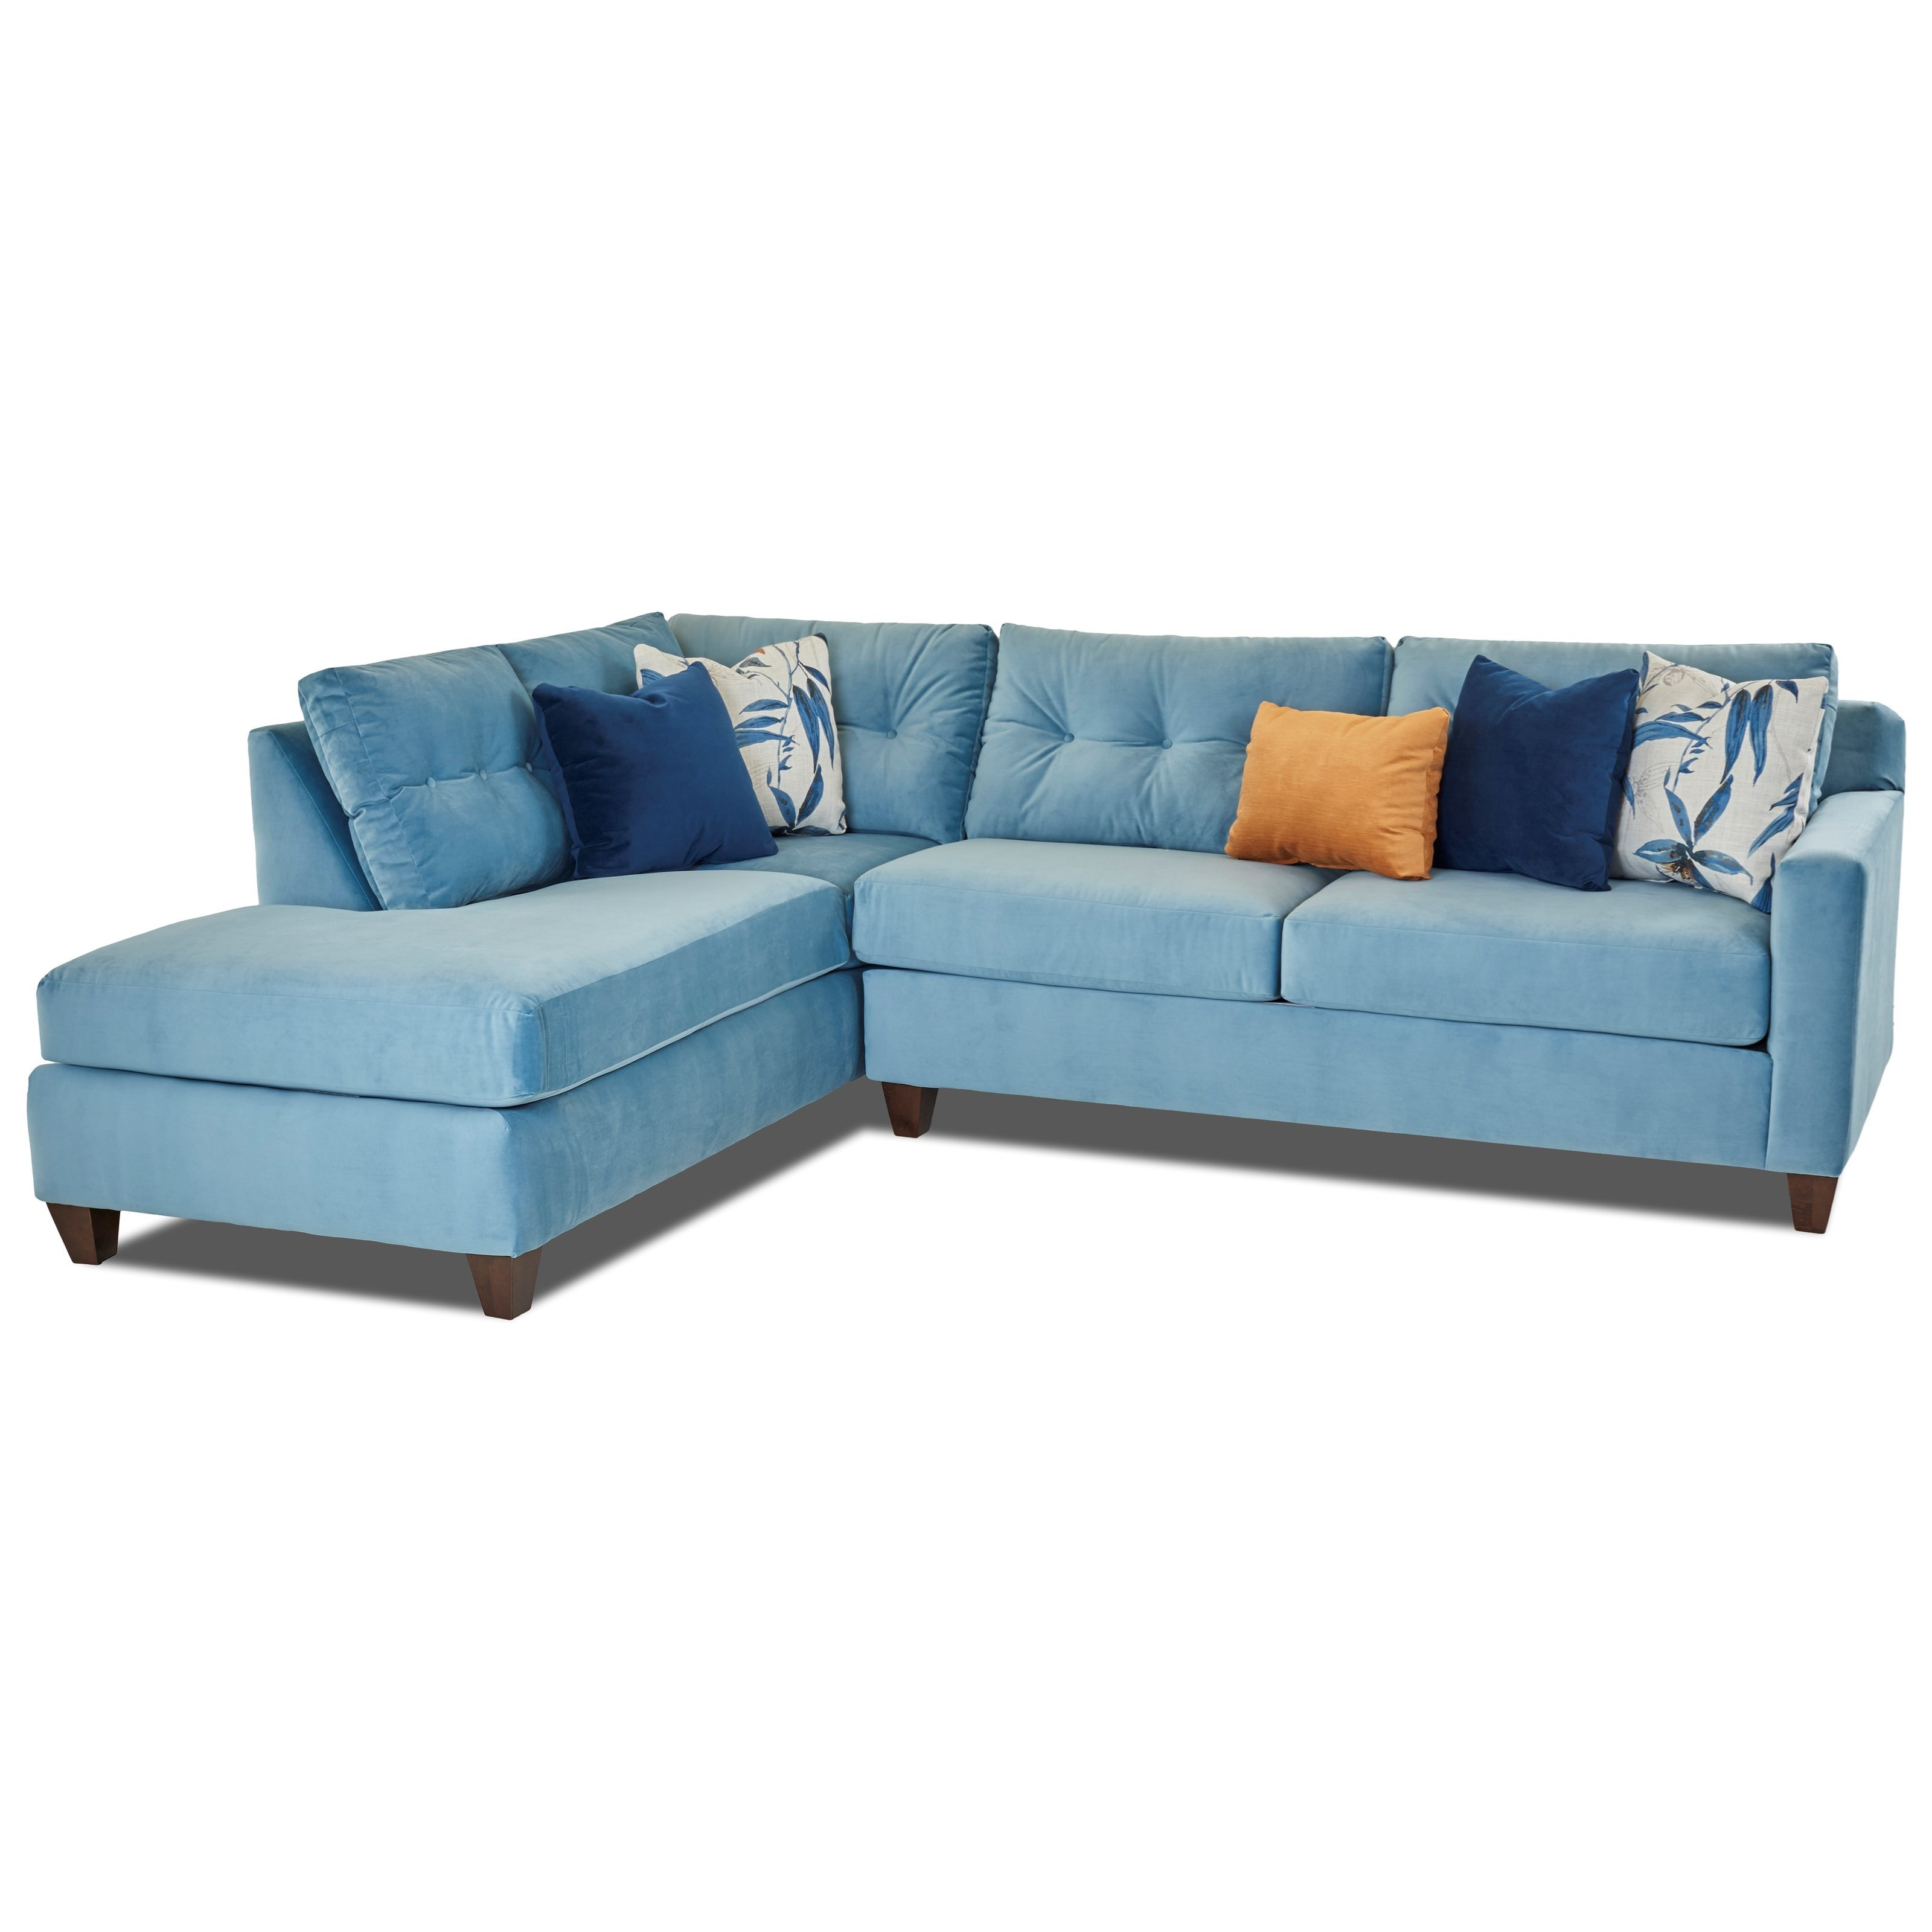 Sloane Sectional Sofa With Chaise